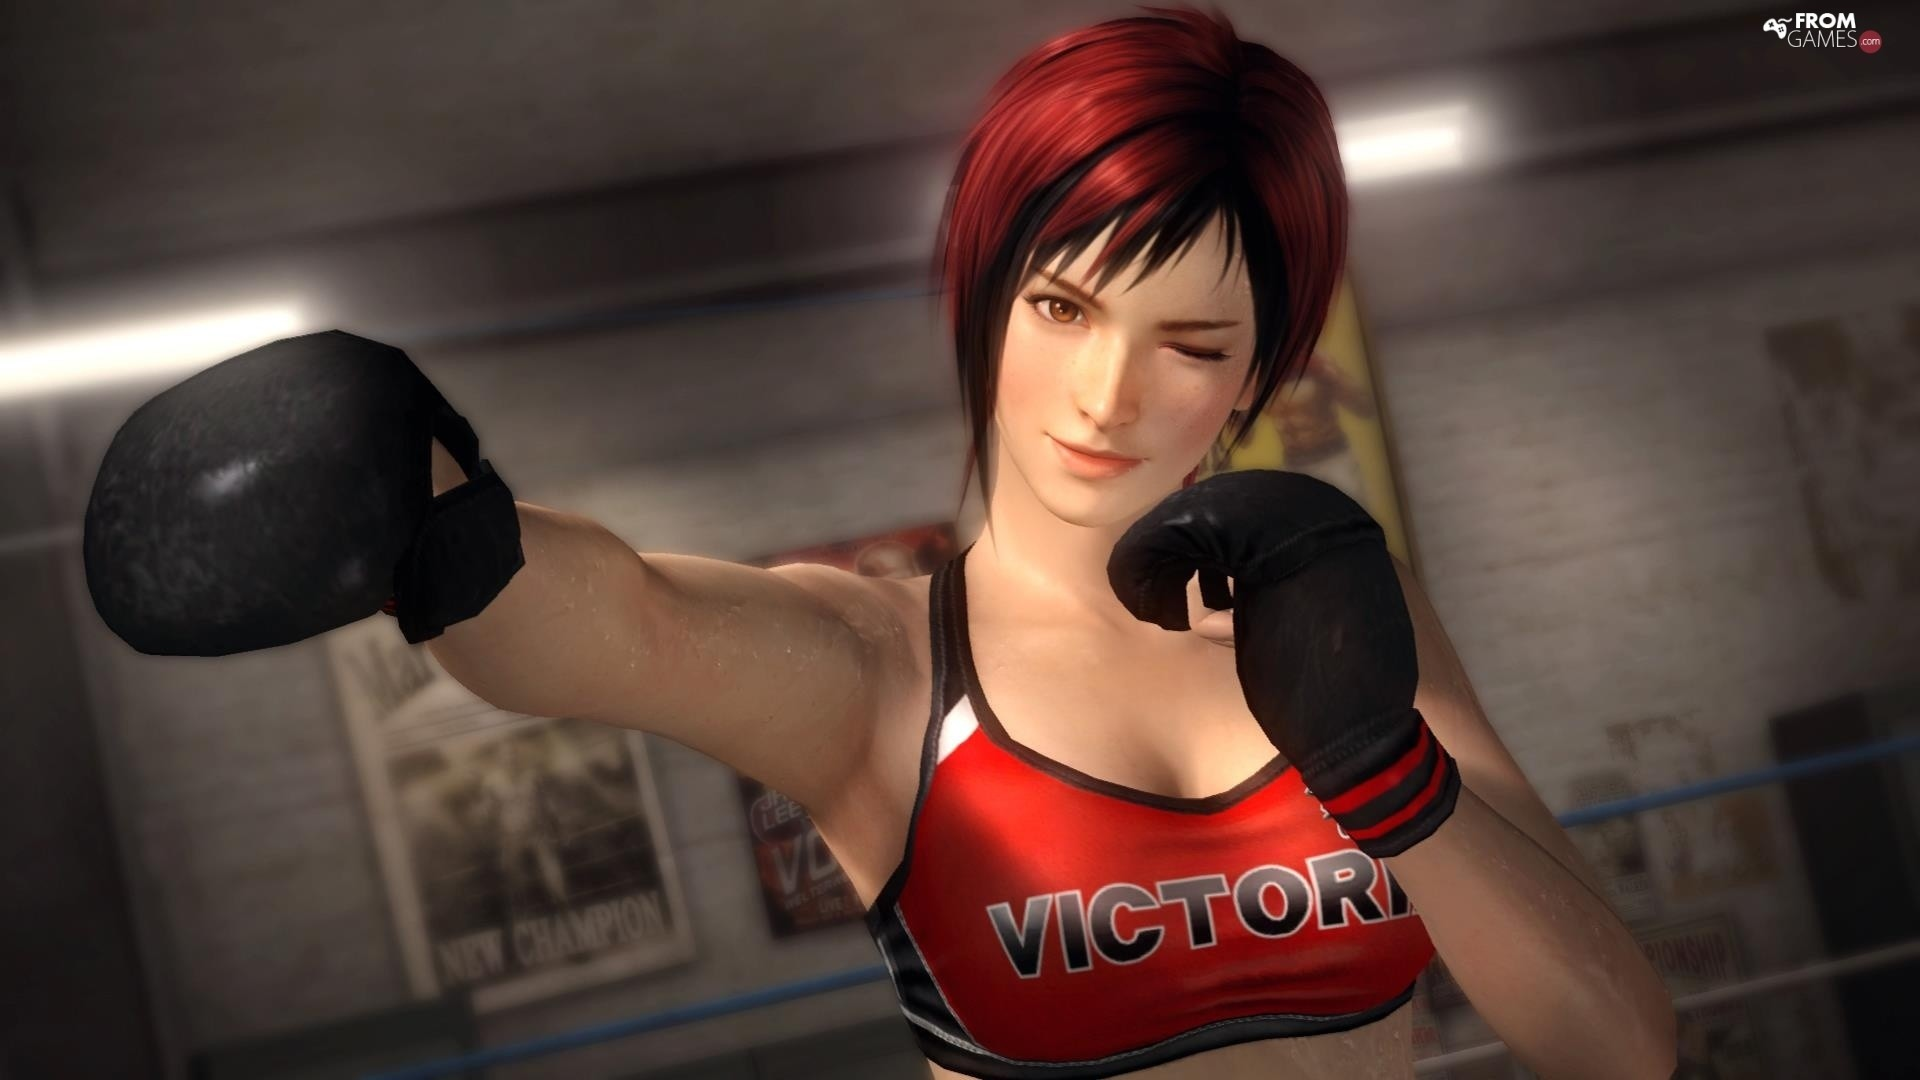 1920x1080 Backgrounds . Mila, Dead Or Alive 5